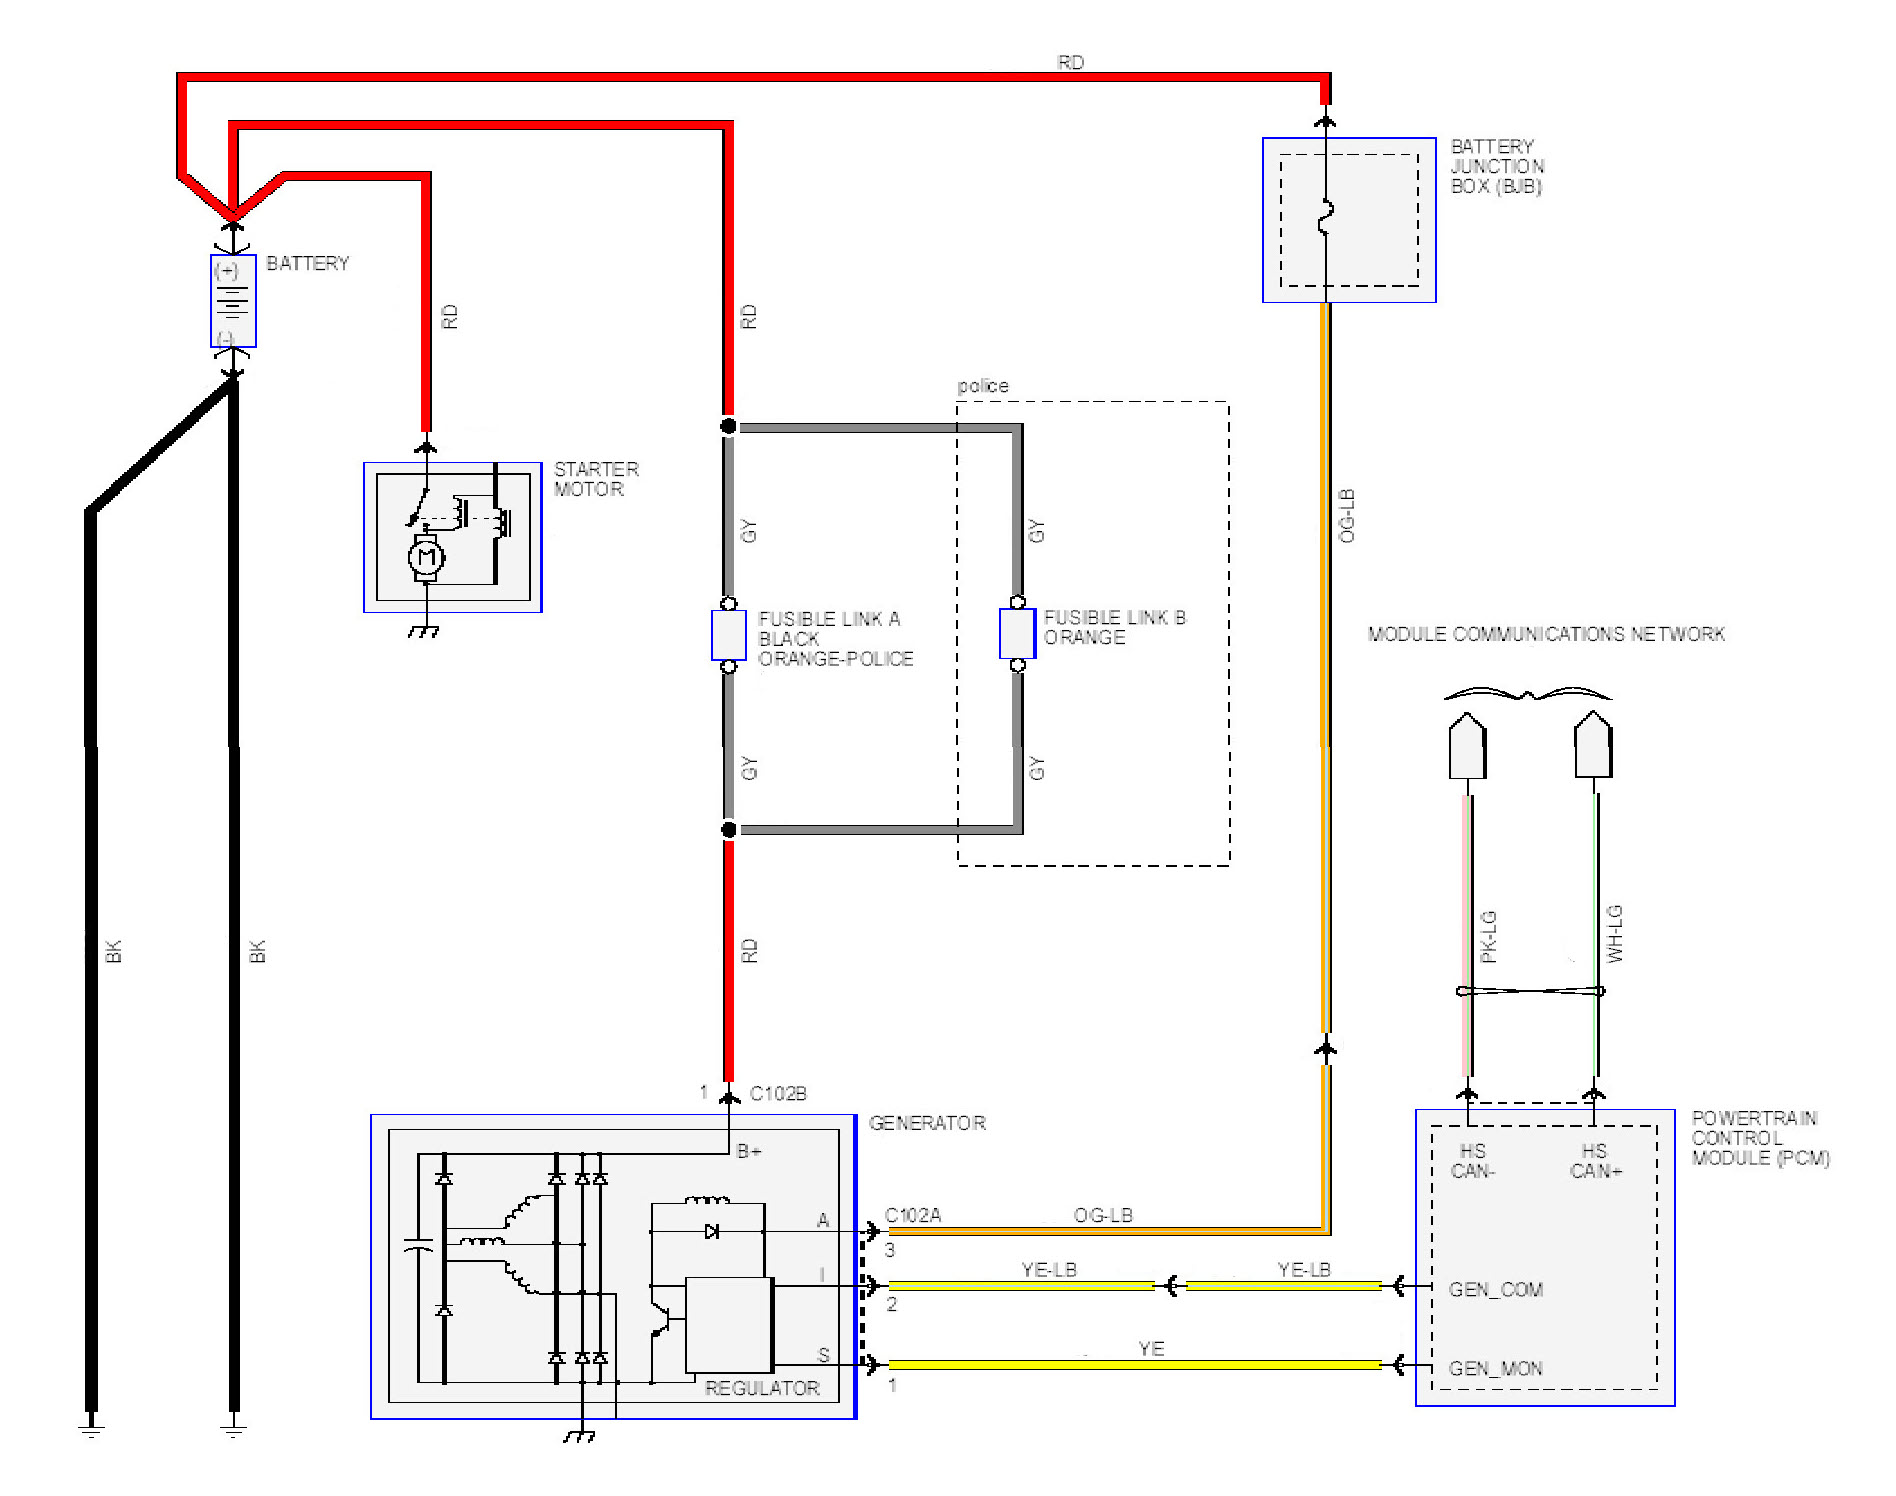 10crownviccharge ford crown victoria alternator wiring diagrams 1999 F150 Radio Wiring Diagram at gsmx.co